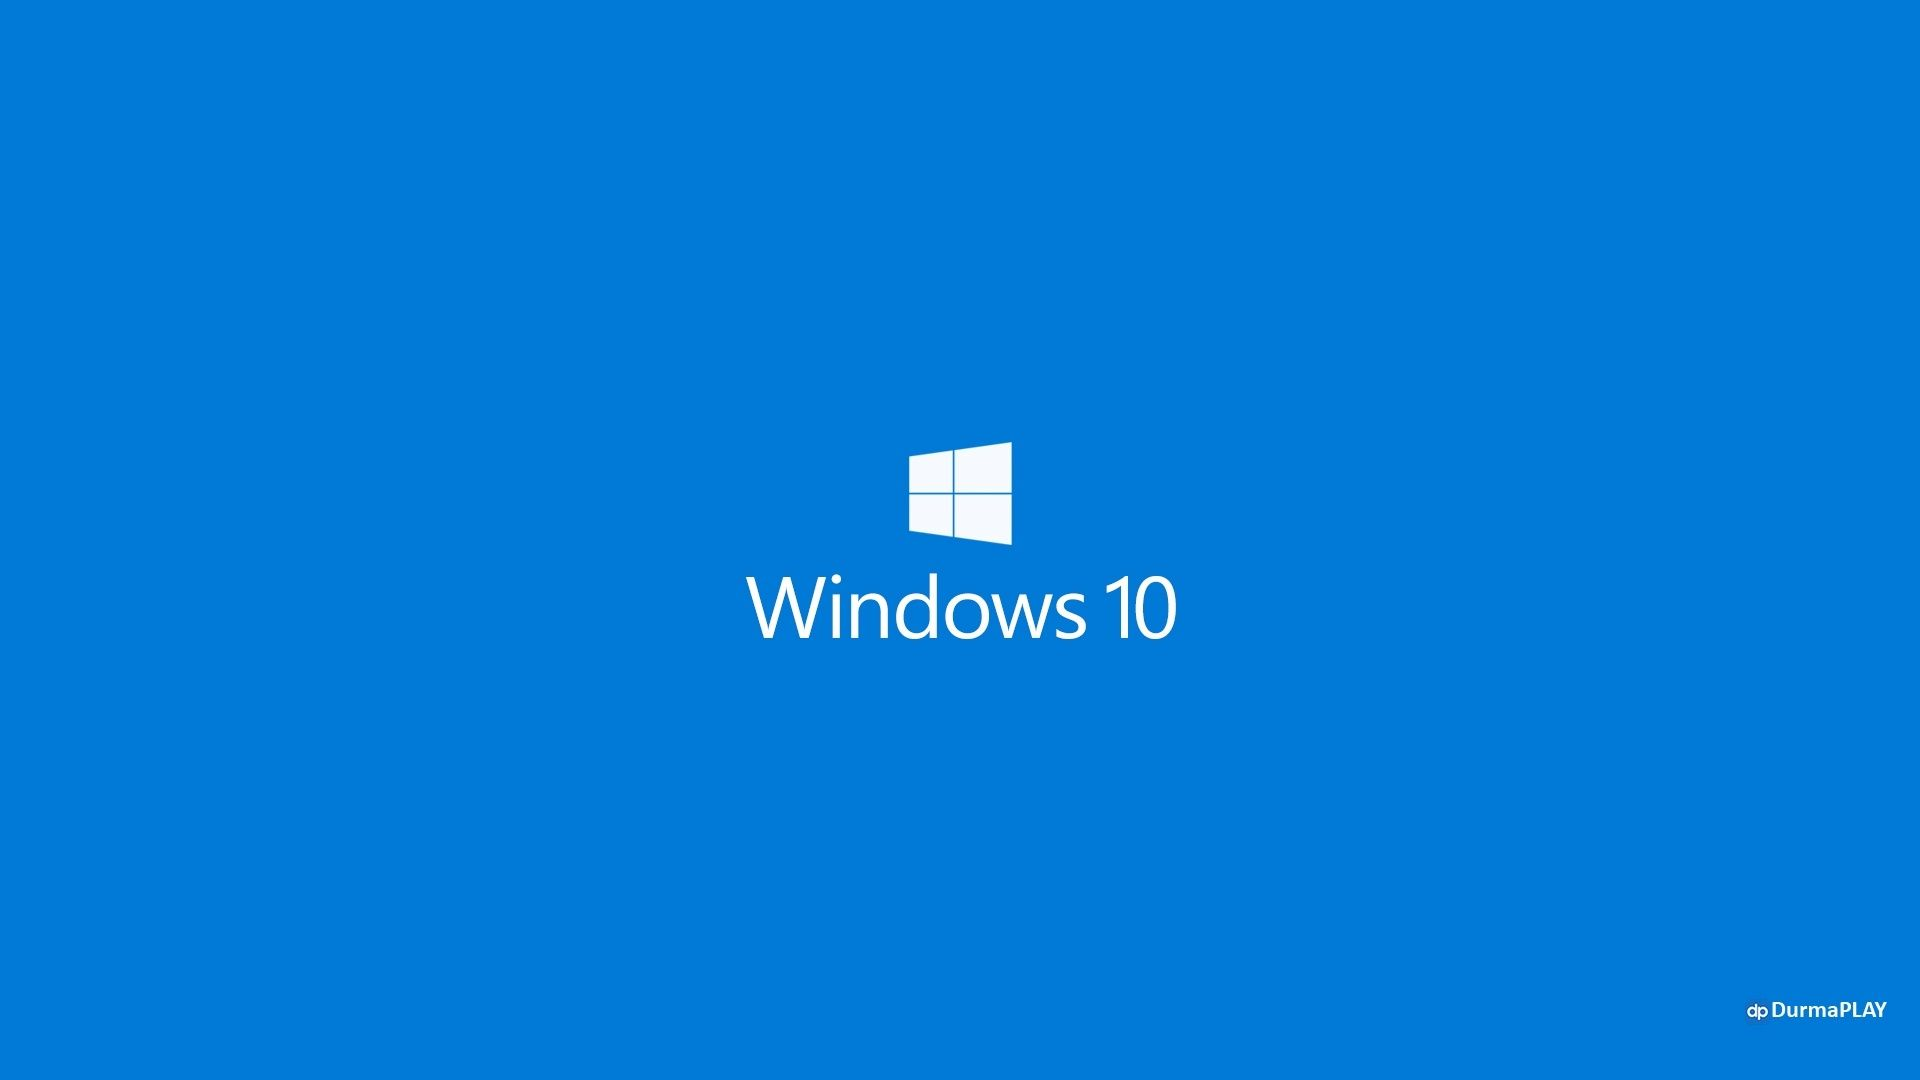 Windows 10 Pro Wallpapers Top Free Windows 10 Pro Backgrounds Wallpaperaccess